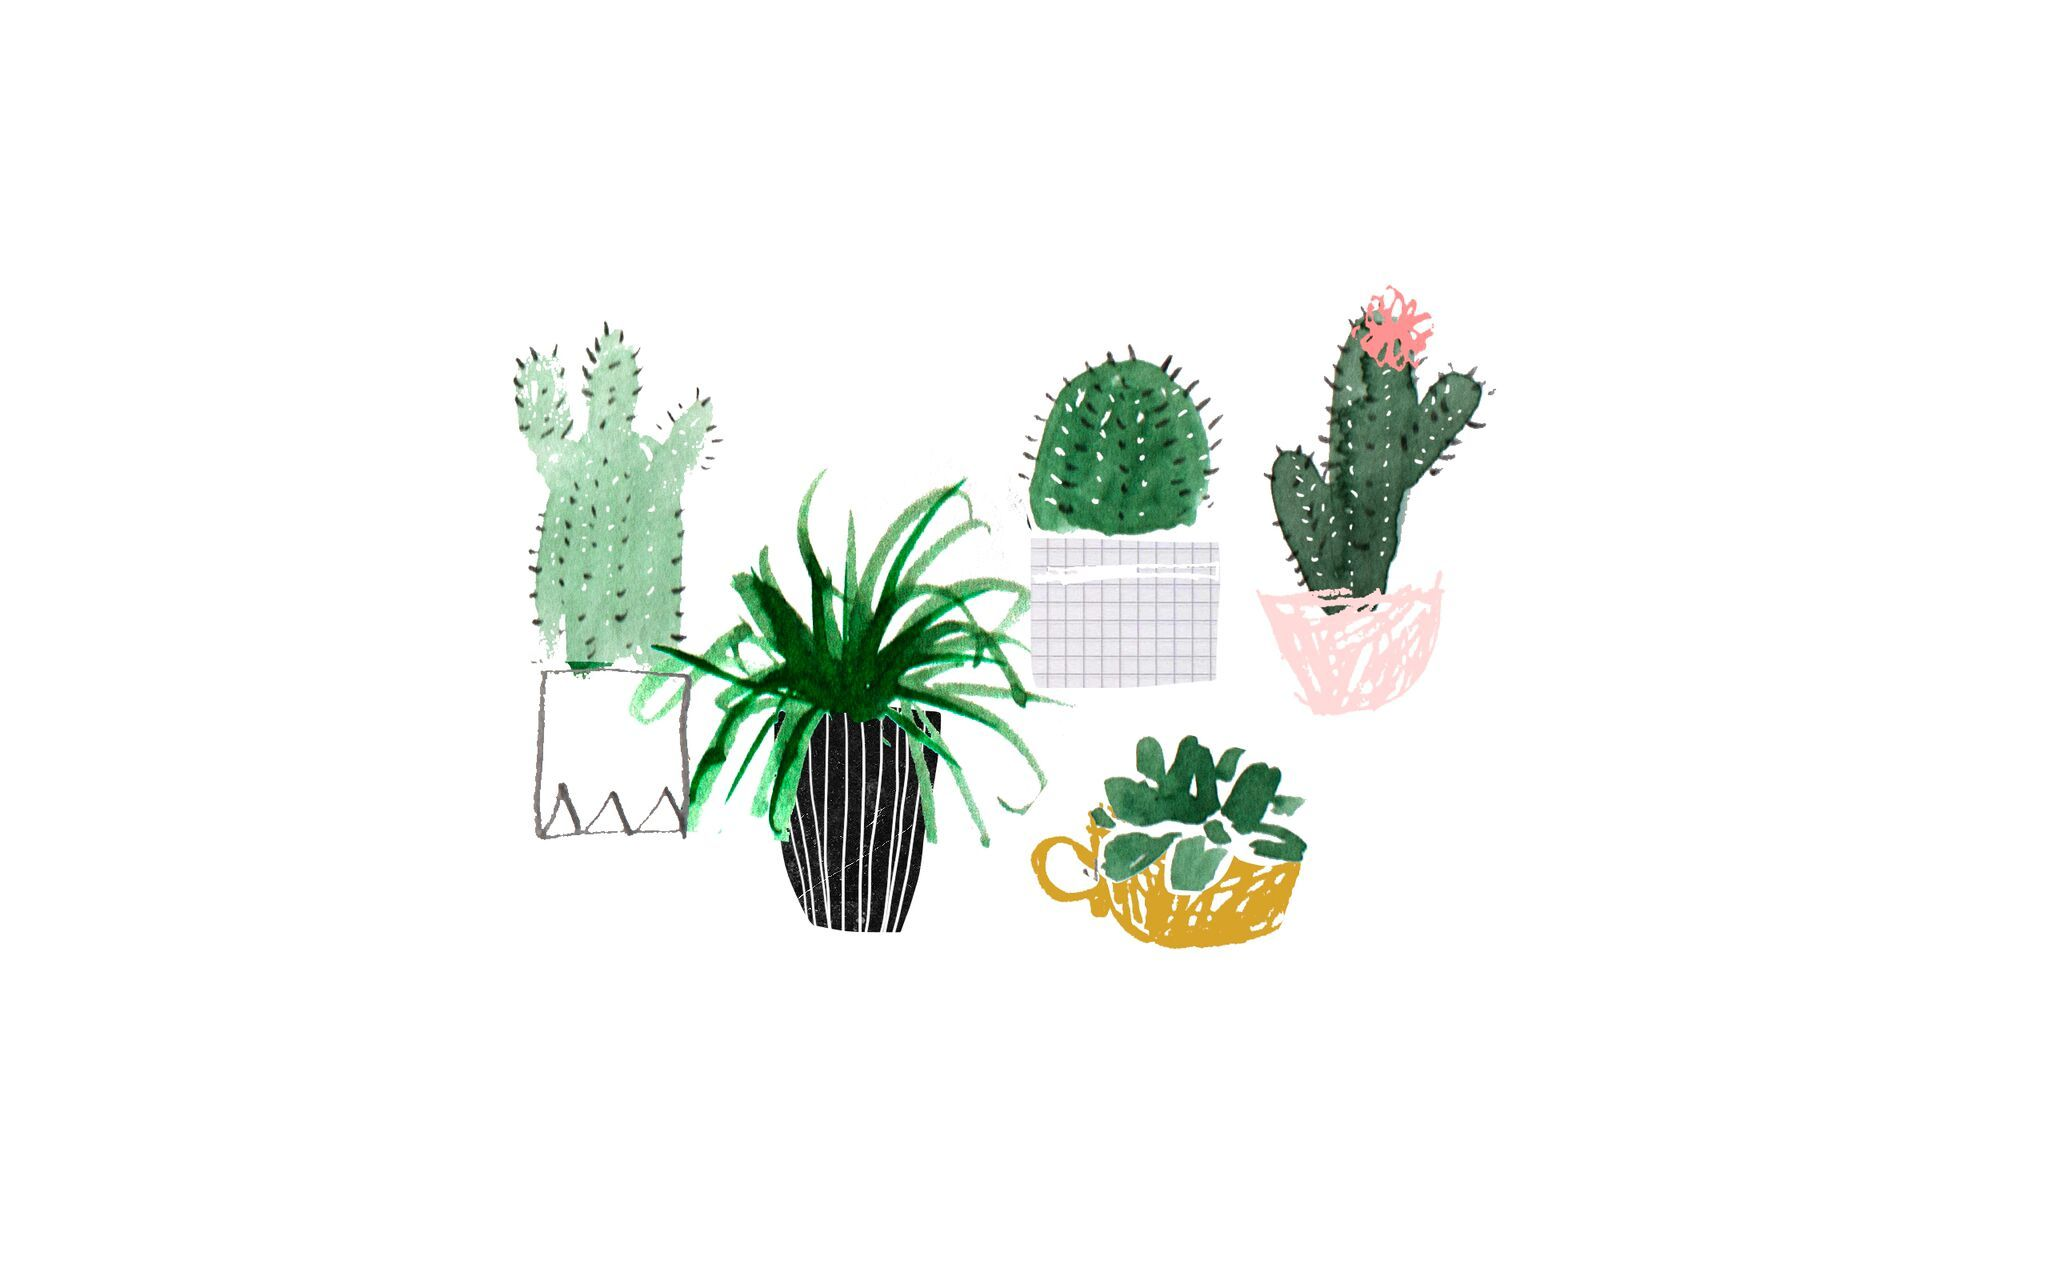 Dropbox Plant Life Aesthetic Desktop Wallpaper Laptop